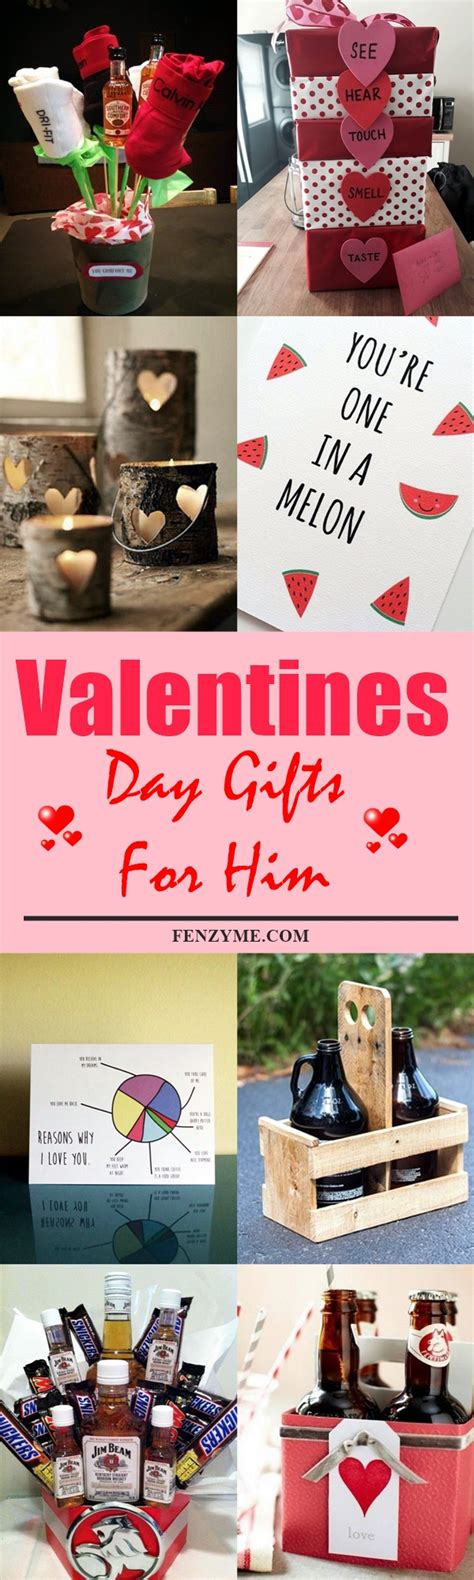 valentines gifts for him 55 handcrafted valentines day gifts for him to express